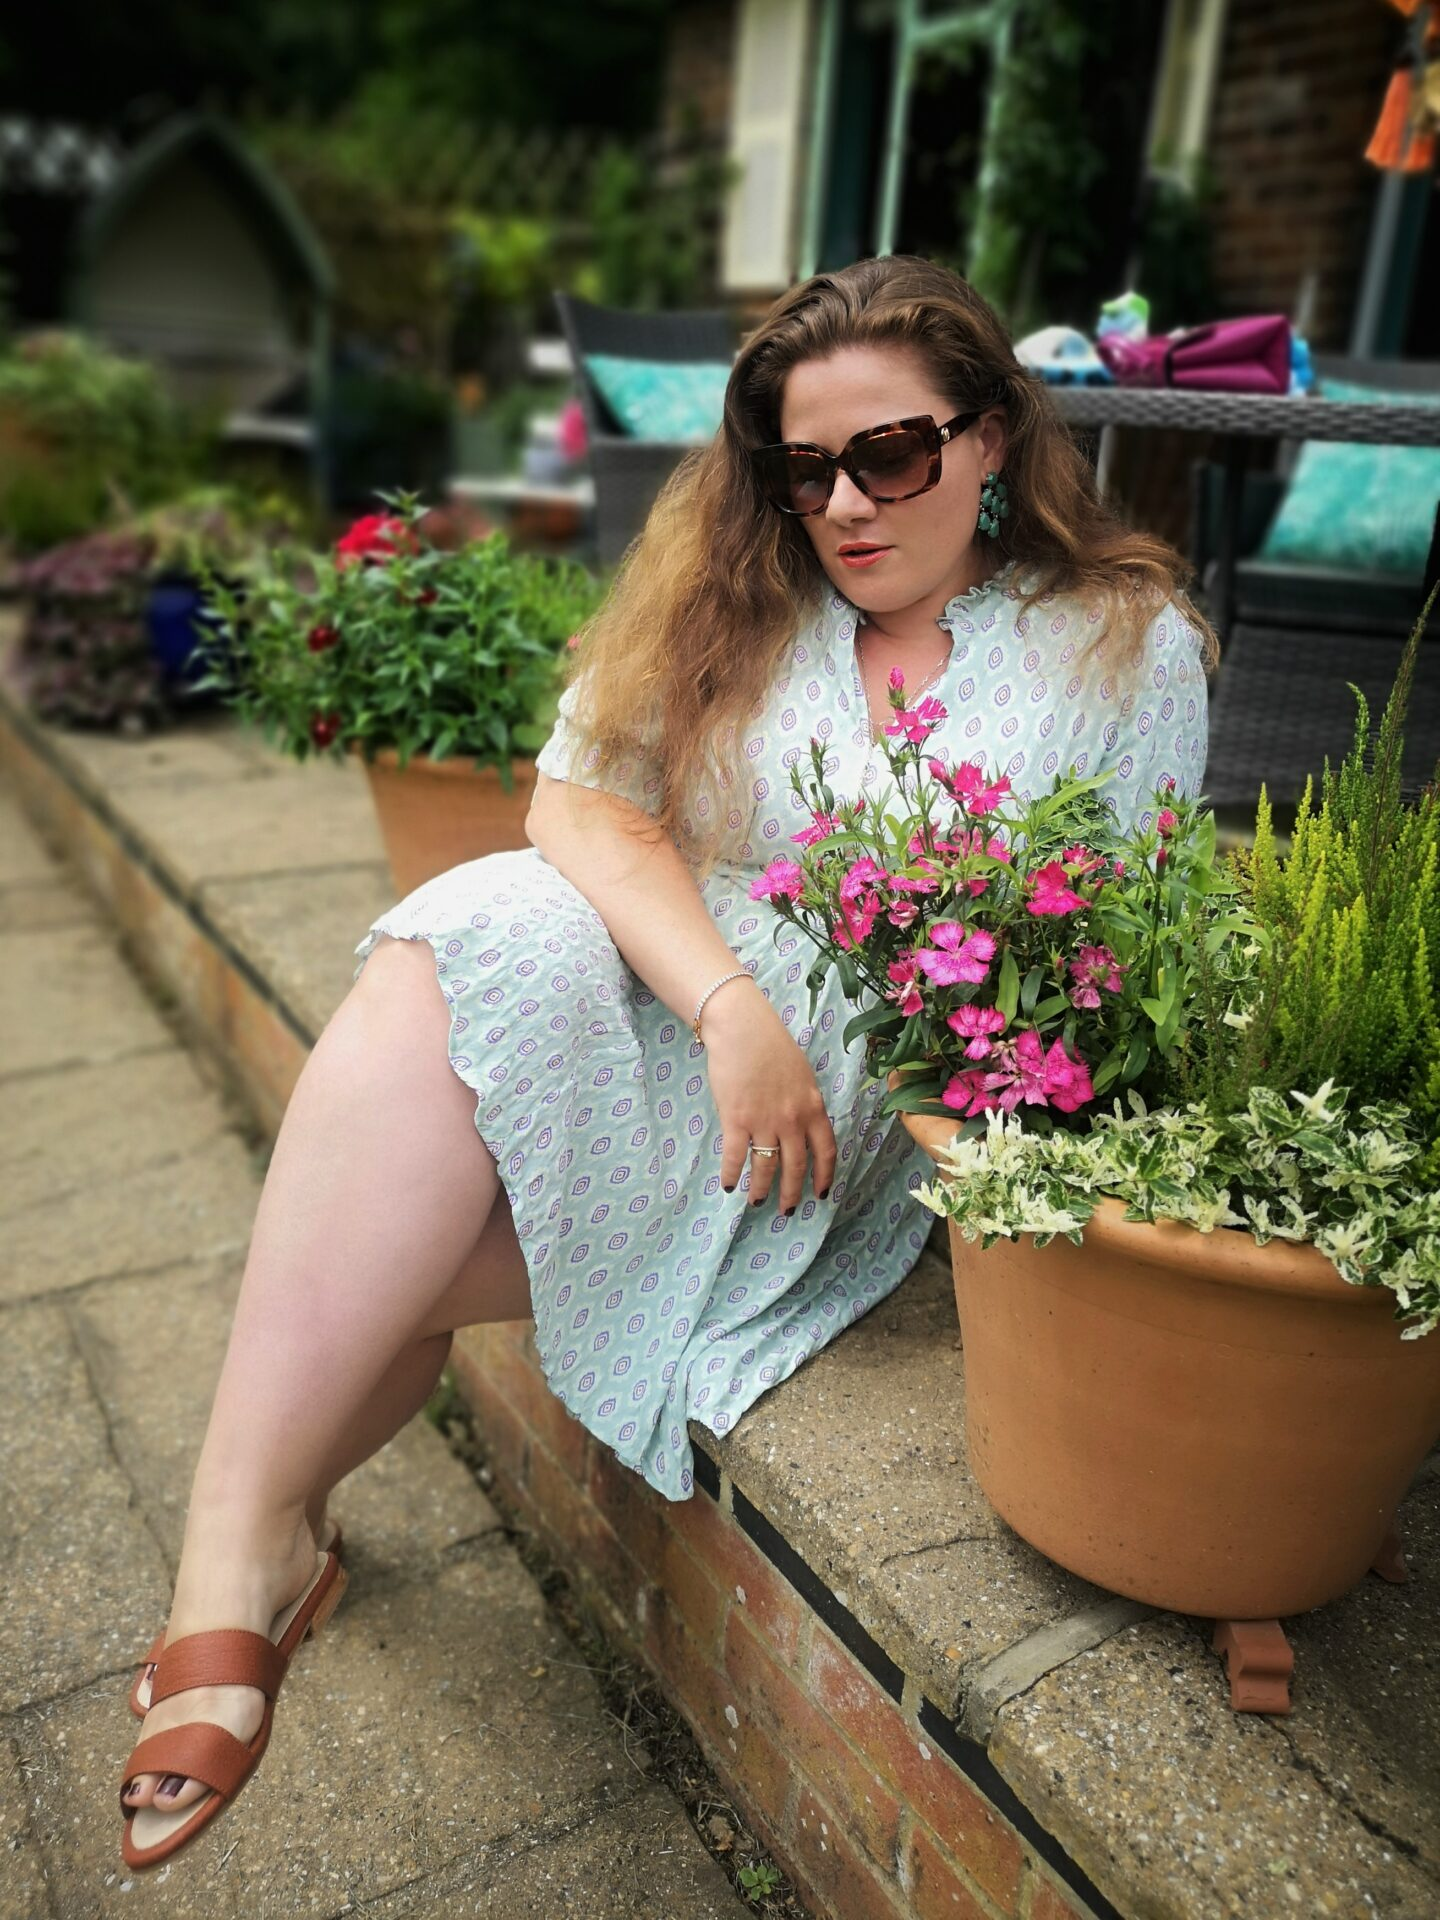 Sandro Summer Dress, French Fashion, Sandro Paris, Summer Dress, Ashford Designer Outlet, French Styling, Menthe A L'eau, Fashionista, French Chic, Chic Fashion, Parisian Brand, The Frenchie Mummy, Summer Dress